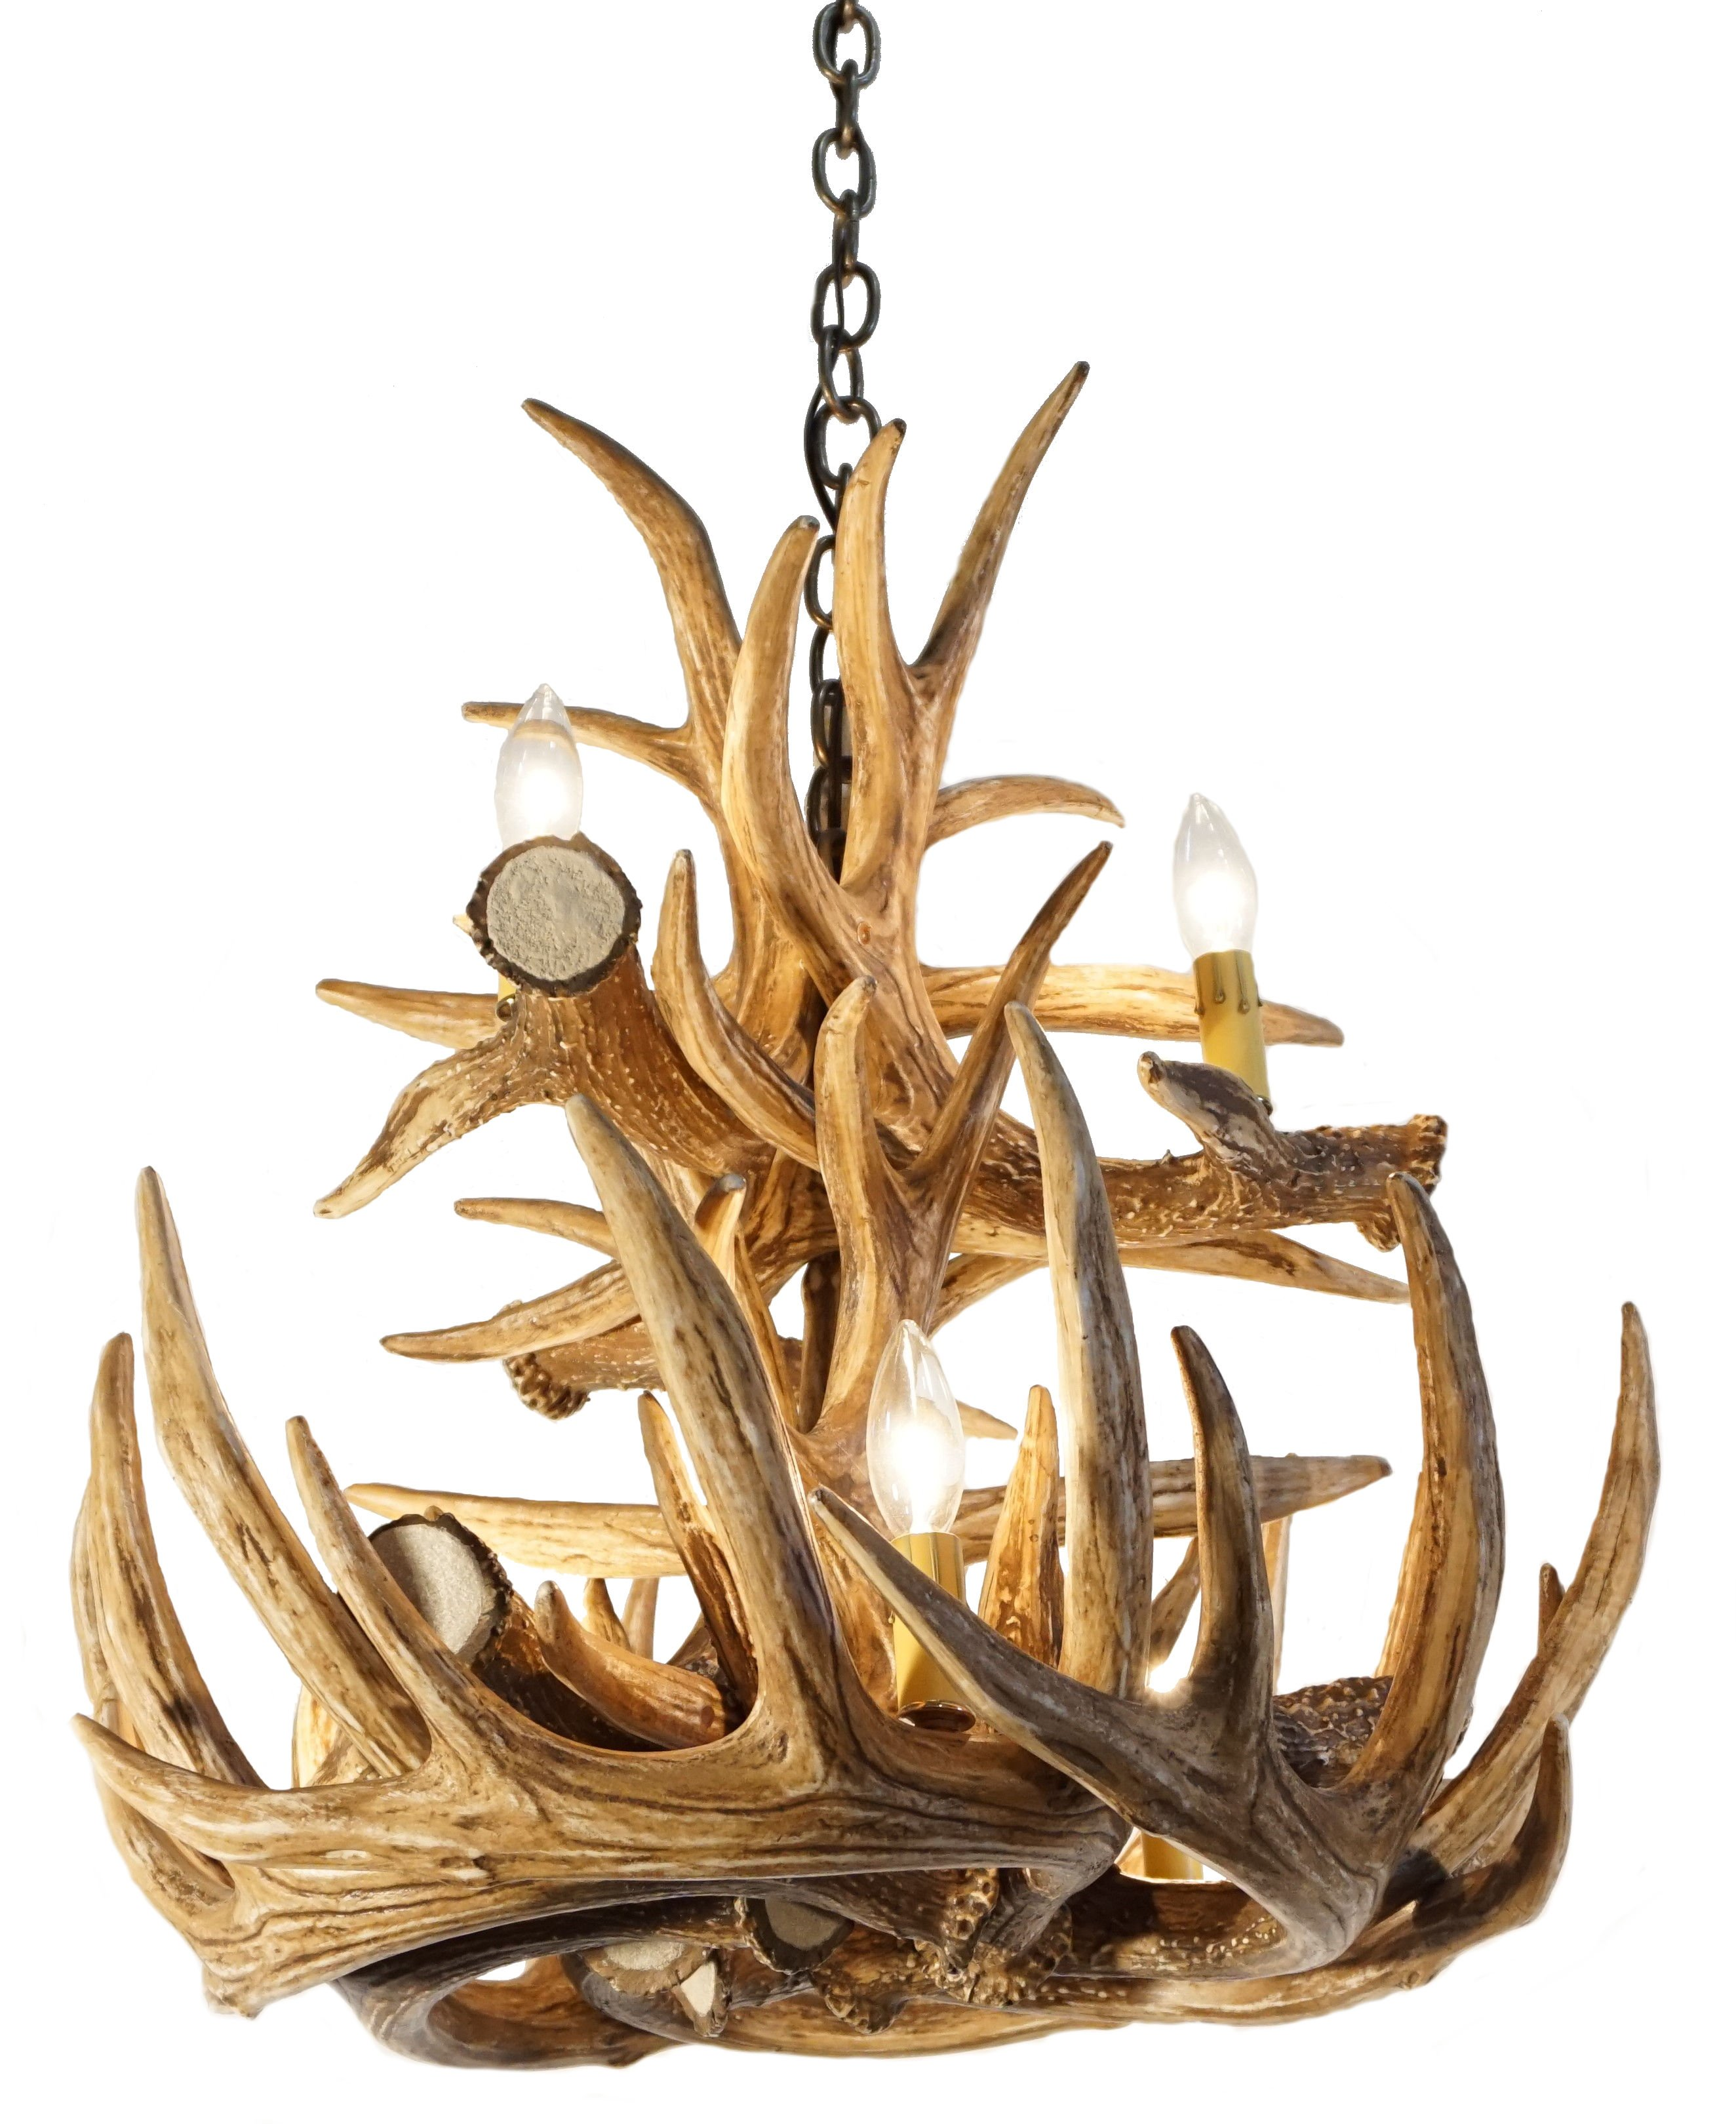 Whitetail deer 12 large antler chandelier cast horn designs whitetail deer 12 large antler chandelier aloadofball Image collections